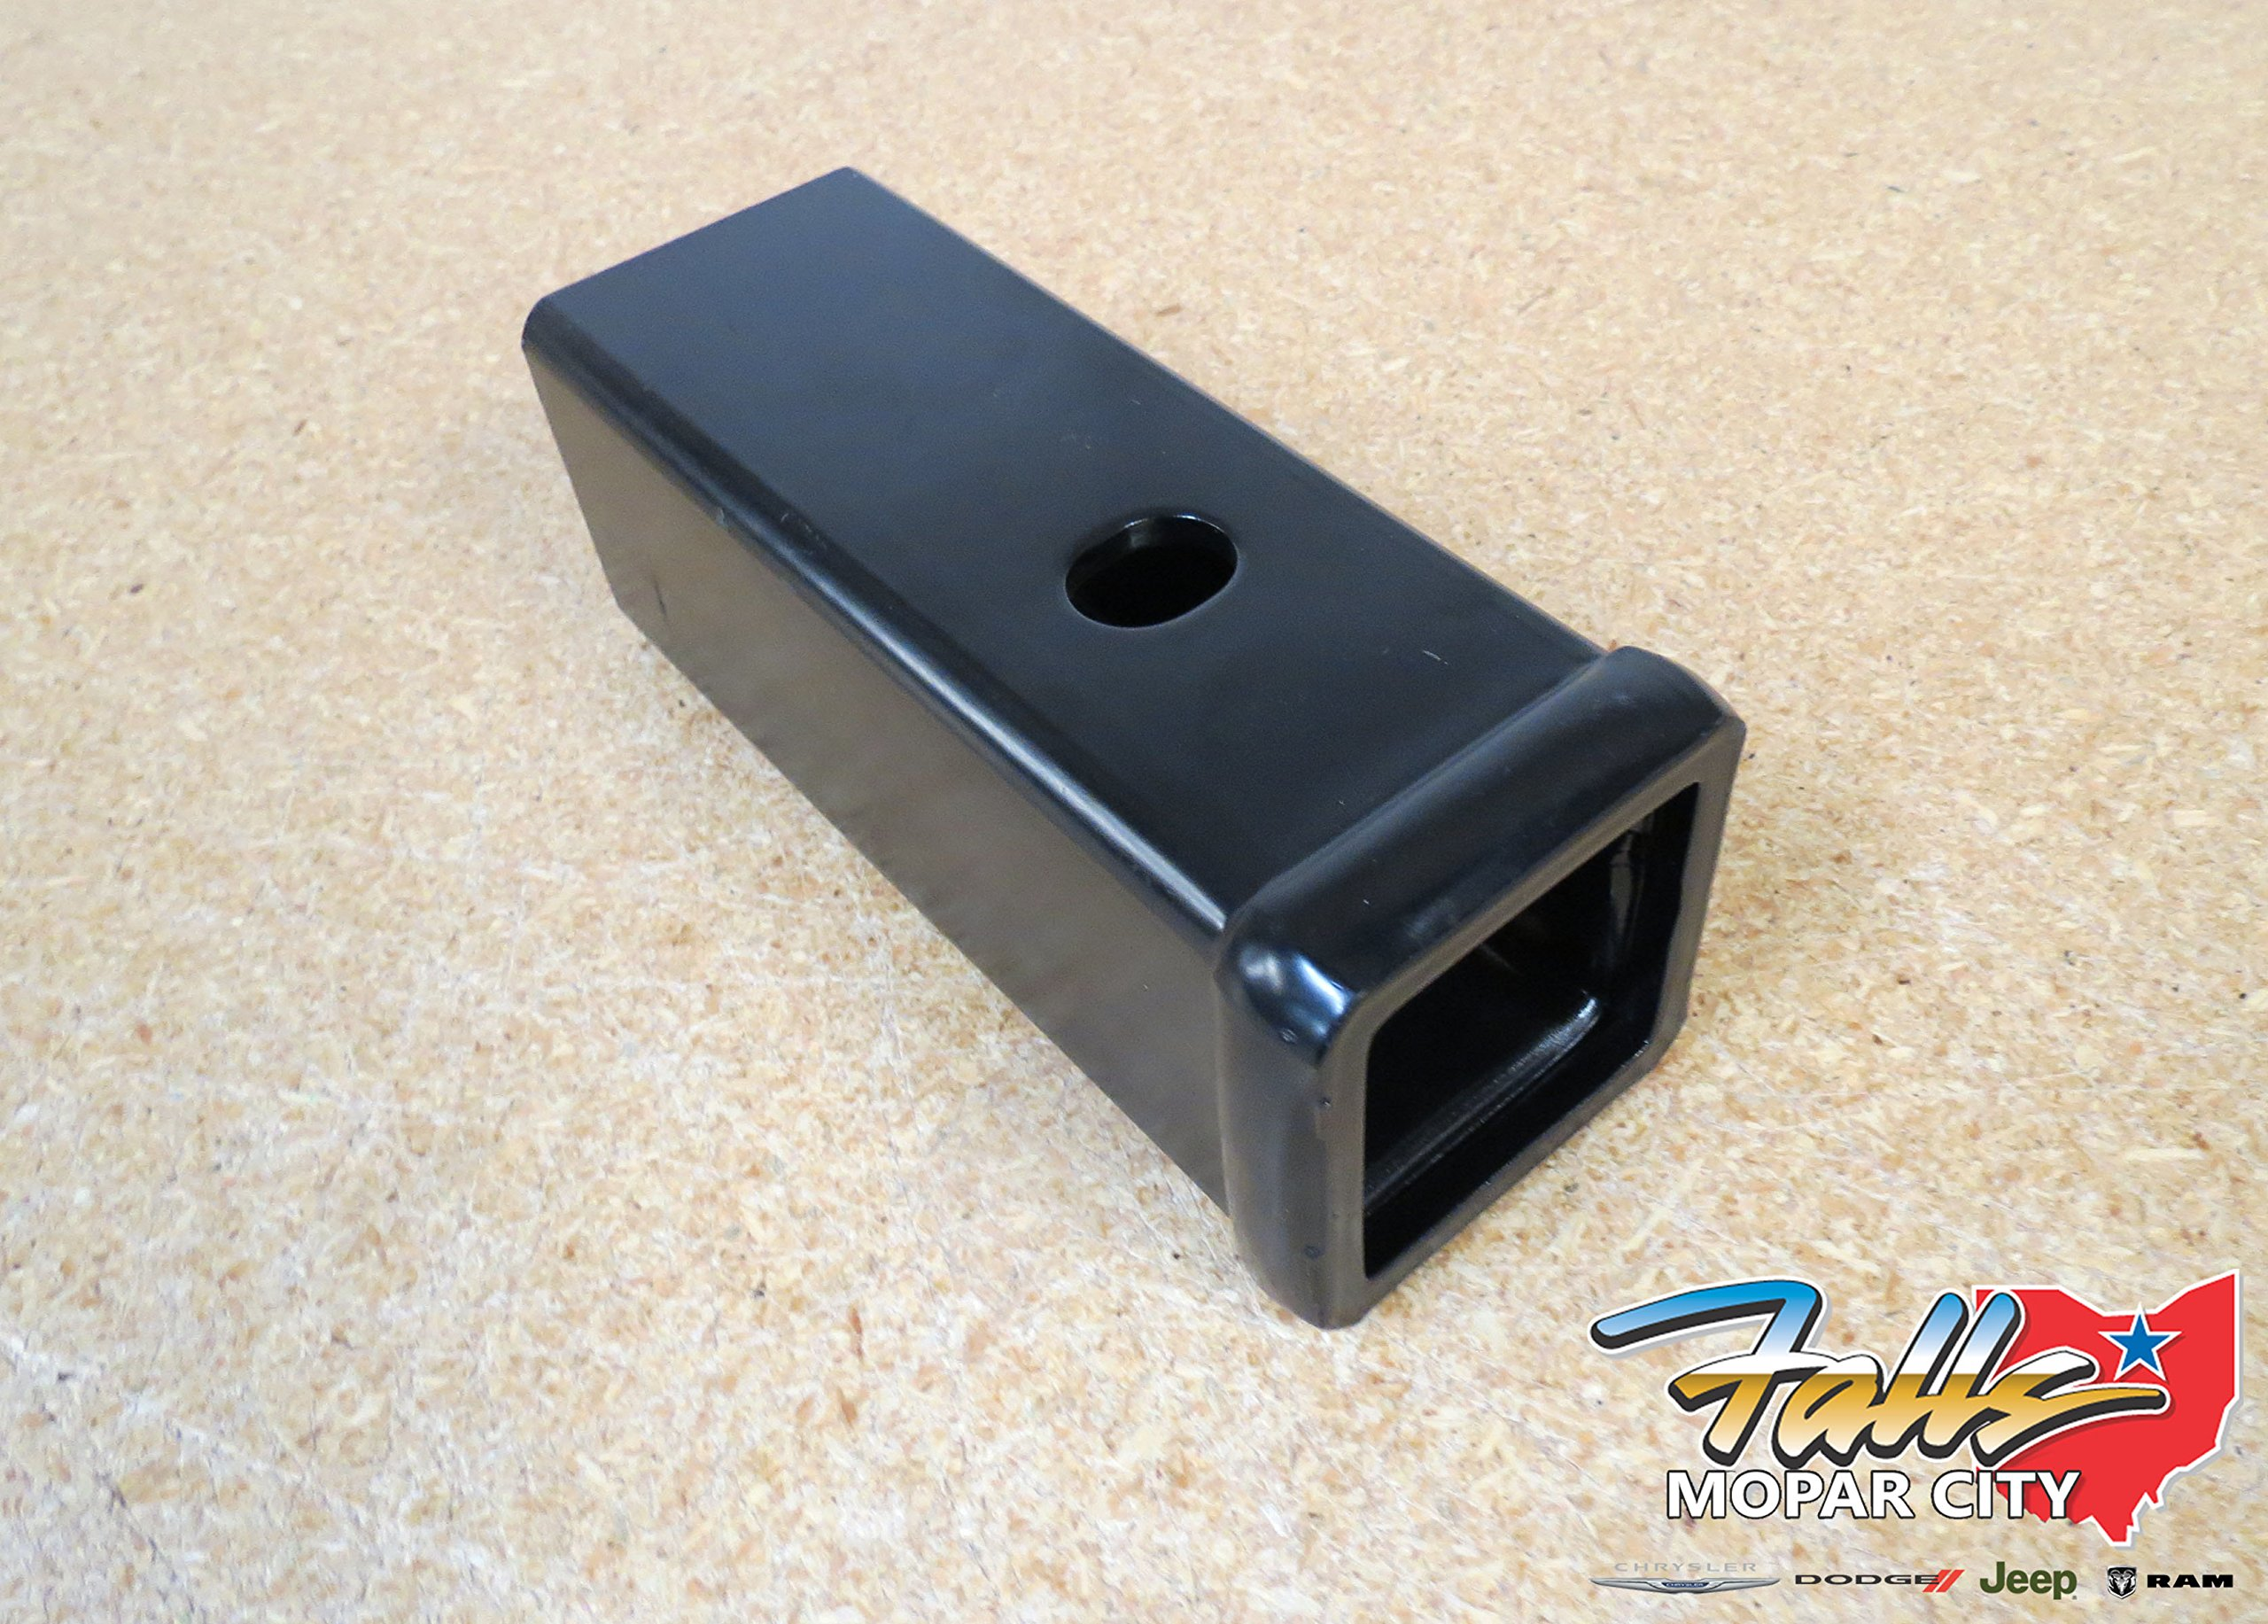 Dodge Ram 2500 3500 2 1/2 to 2 Inch Hitch Receiver Adapter Oem Mopar by Mopar